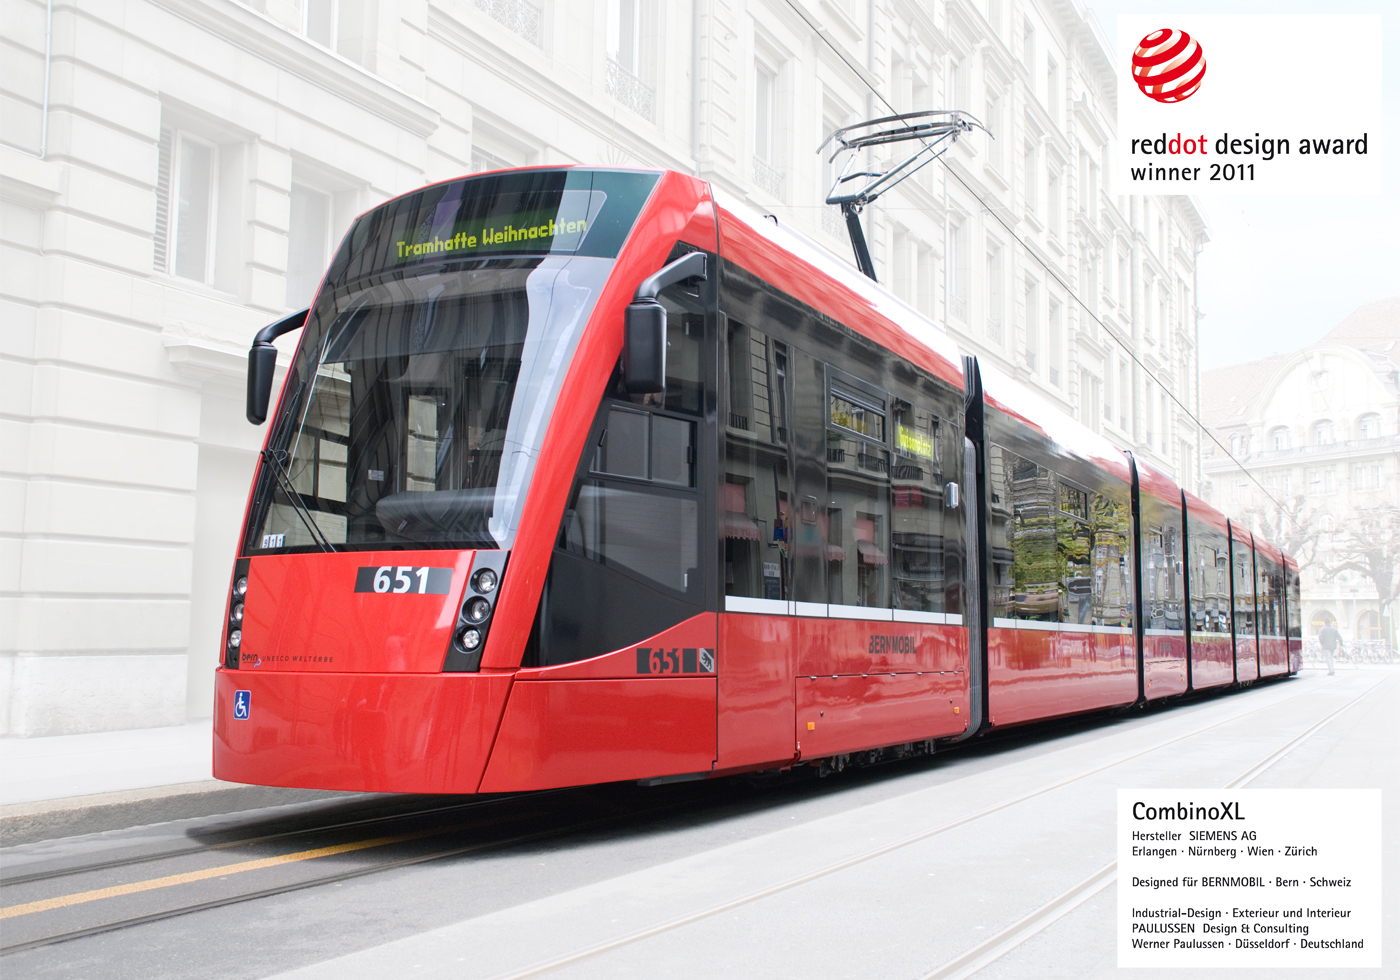 Combino XL, SIEMENS,, Bern, Bernmobil, red dot winner 2011